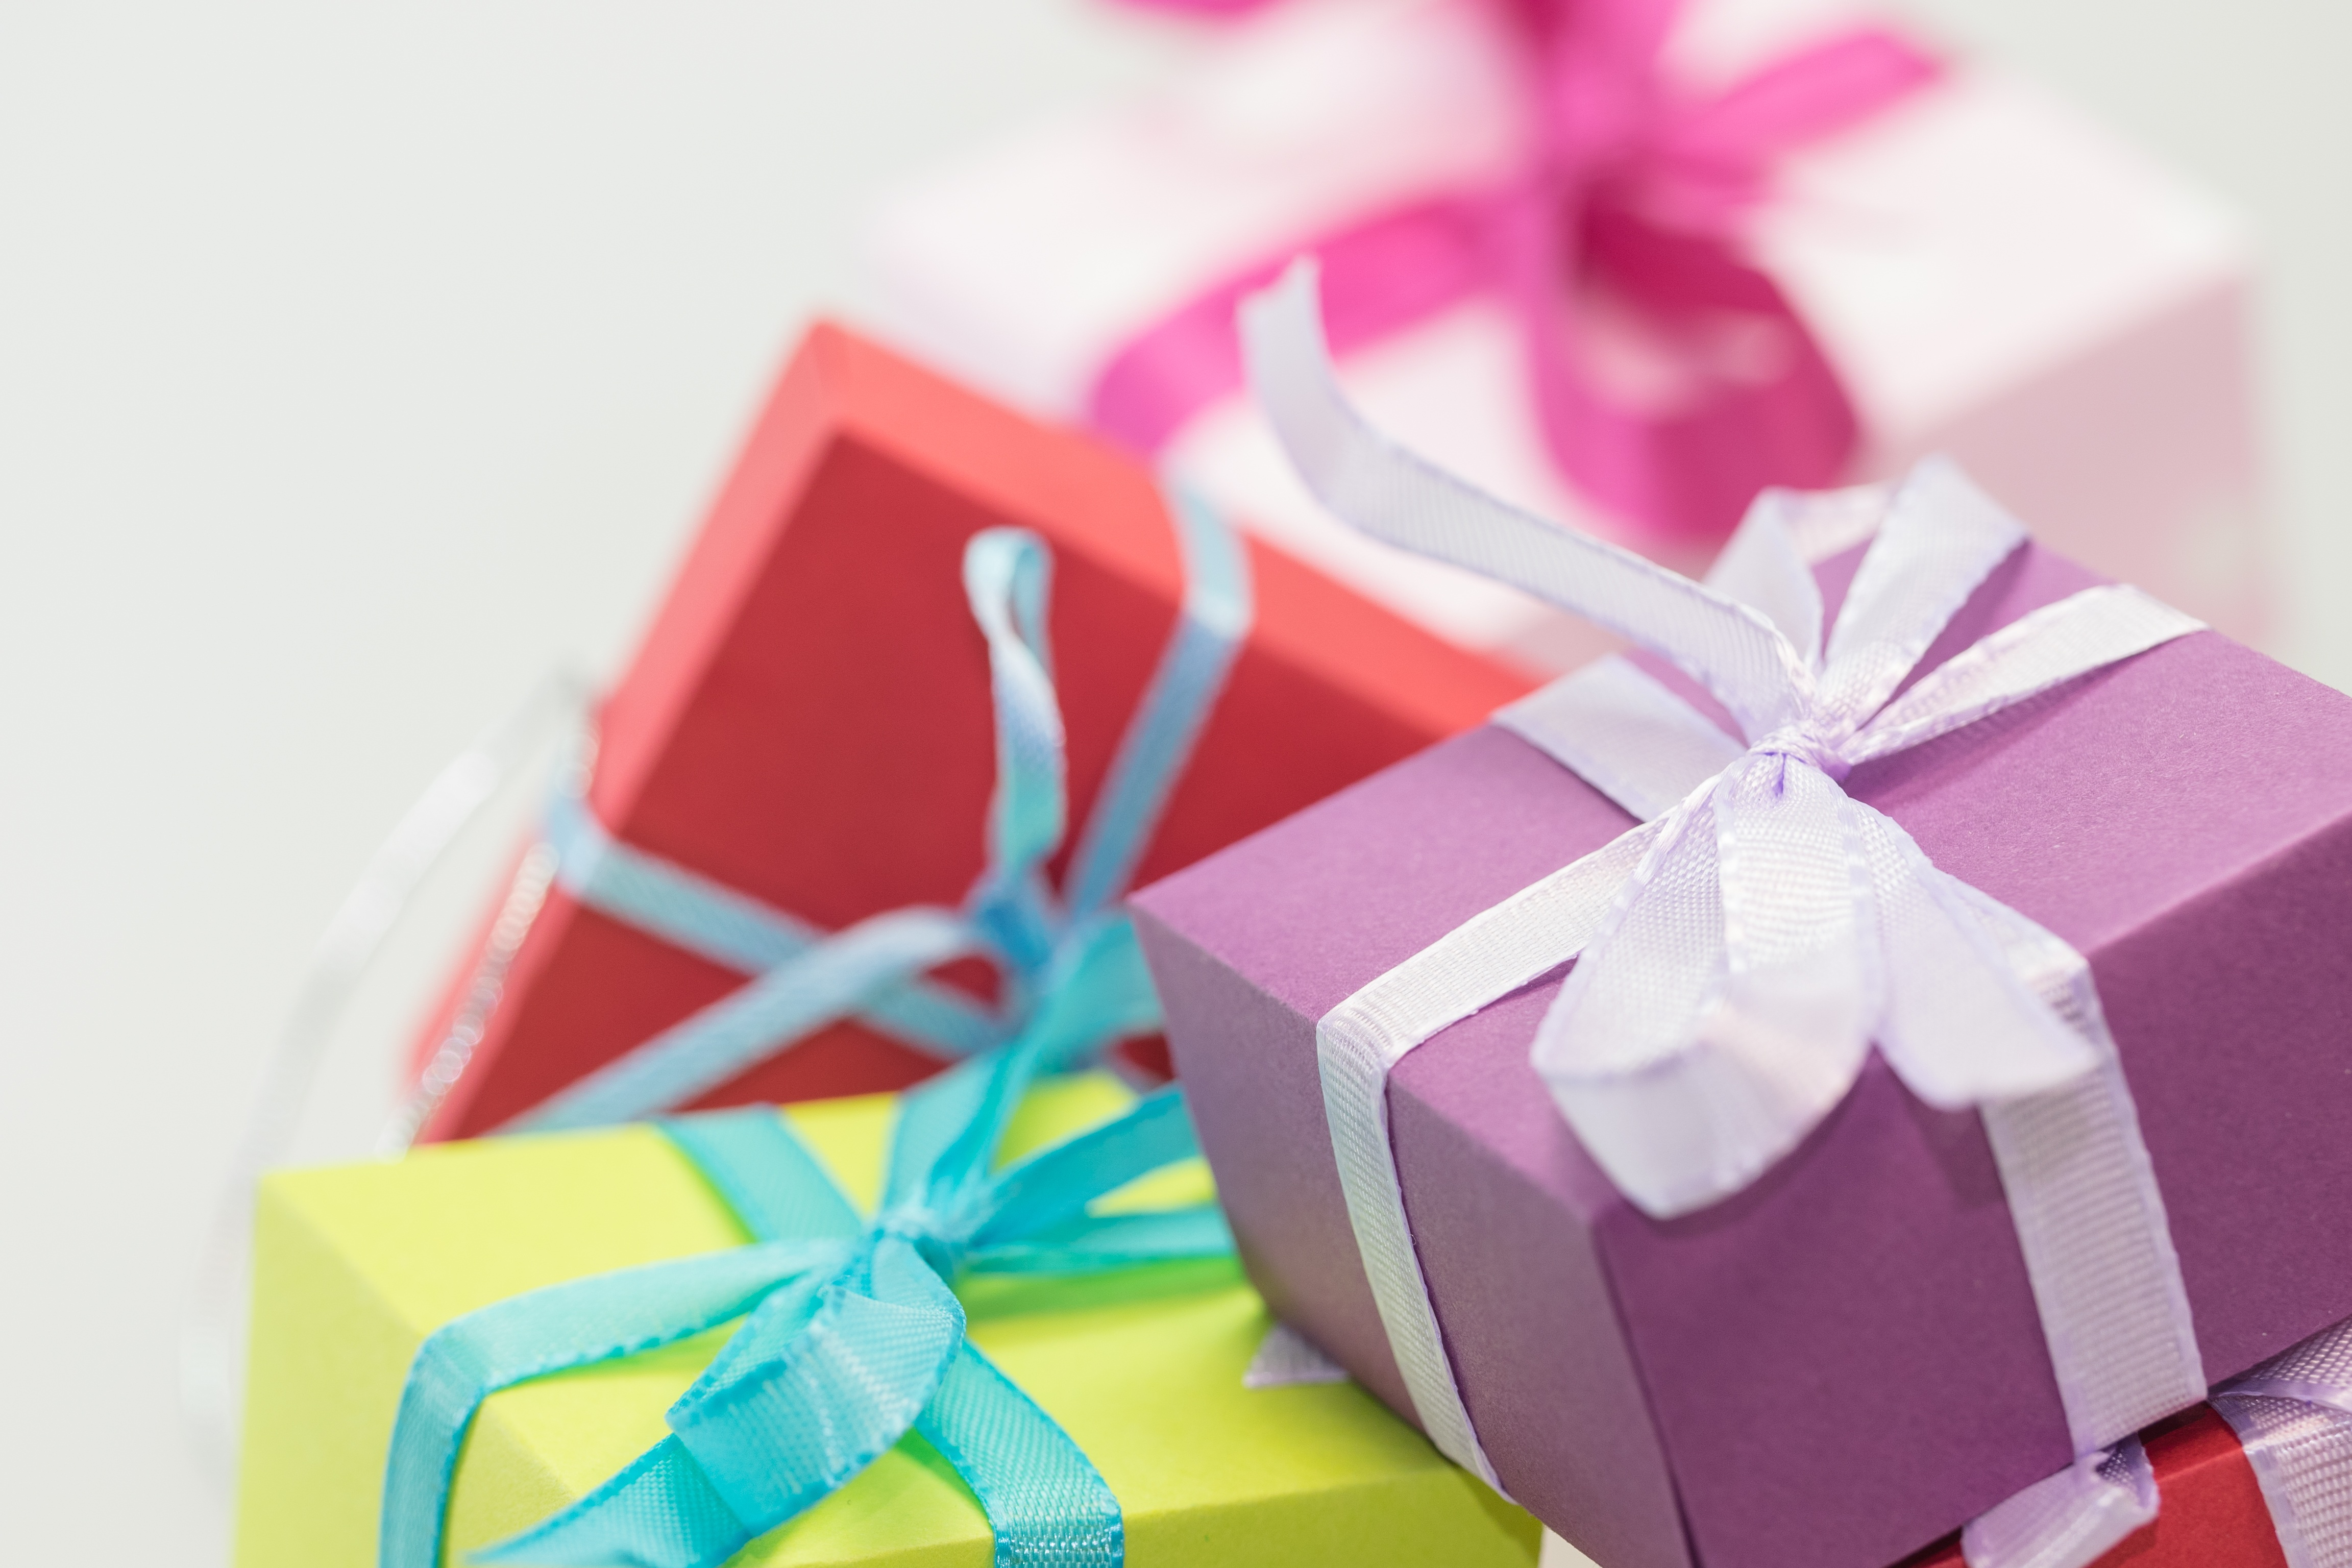 Strategic book giveaways and gifting books